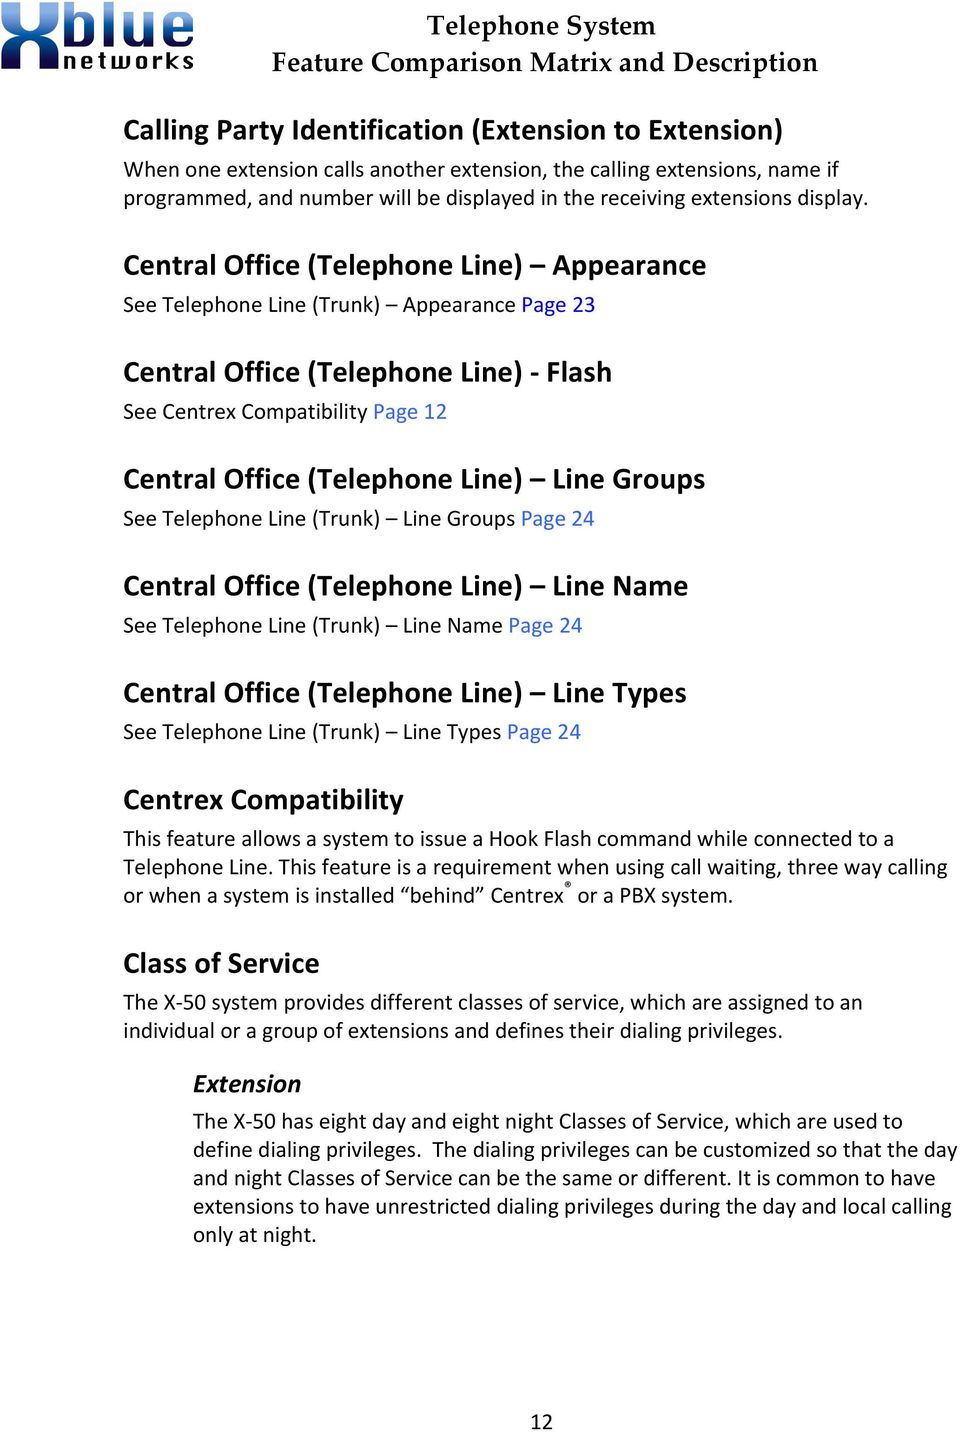 Central Office (Telephone Line) Appearance See Telephone Line (Trunk) Appearance Page 23 Central Office (Telephone Line) - Flash See Centrex Compatibility Page 12 Central Office (Telephone Line) Line